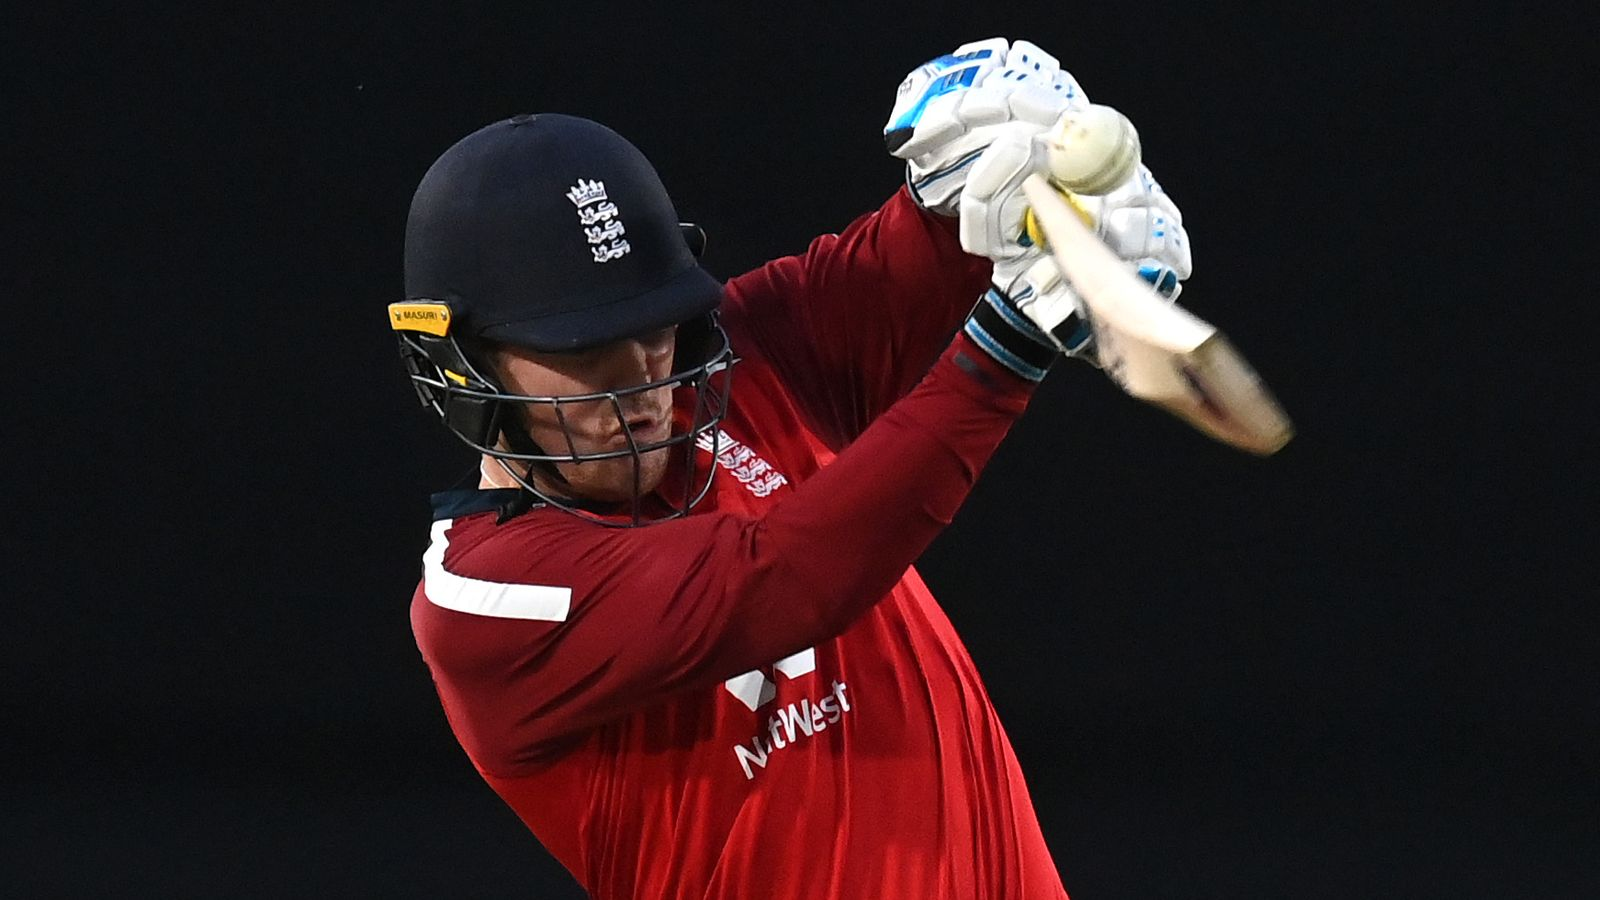 England's Jason Roy excited to face South Africa with difficult summer a distant memory - Sky Sports